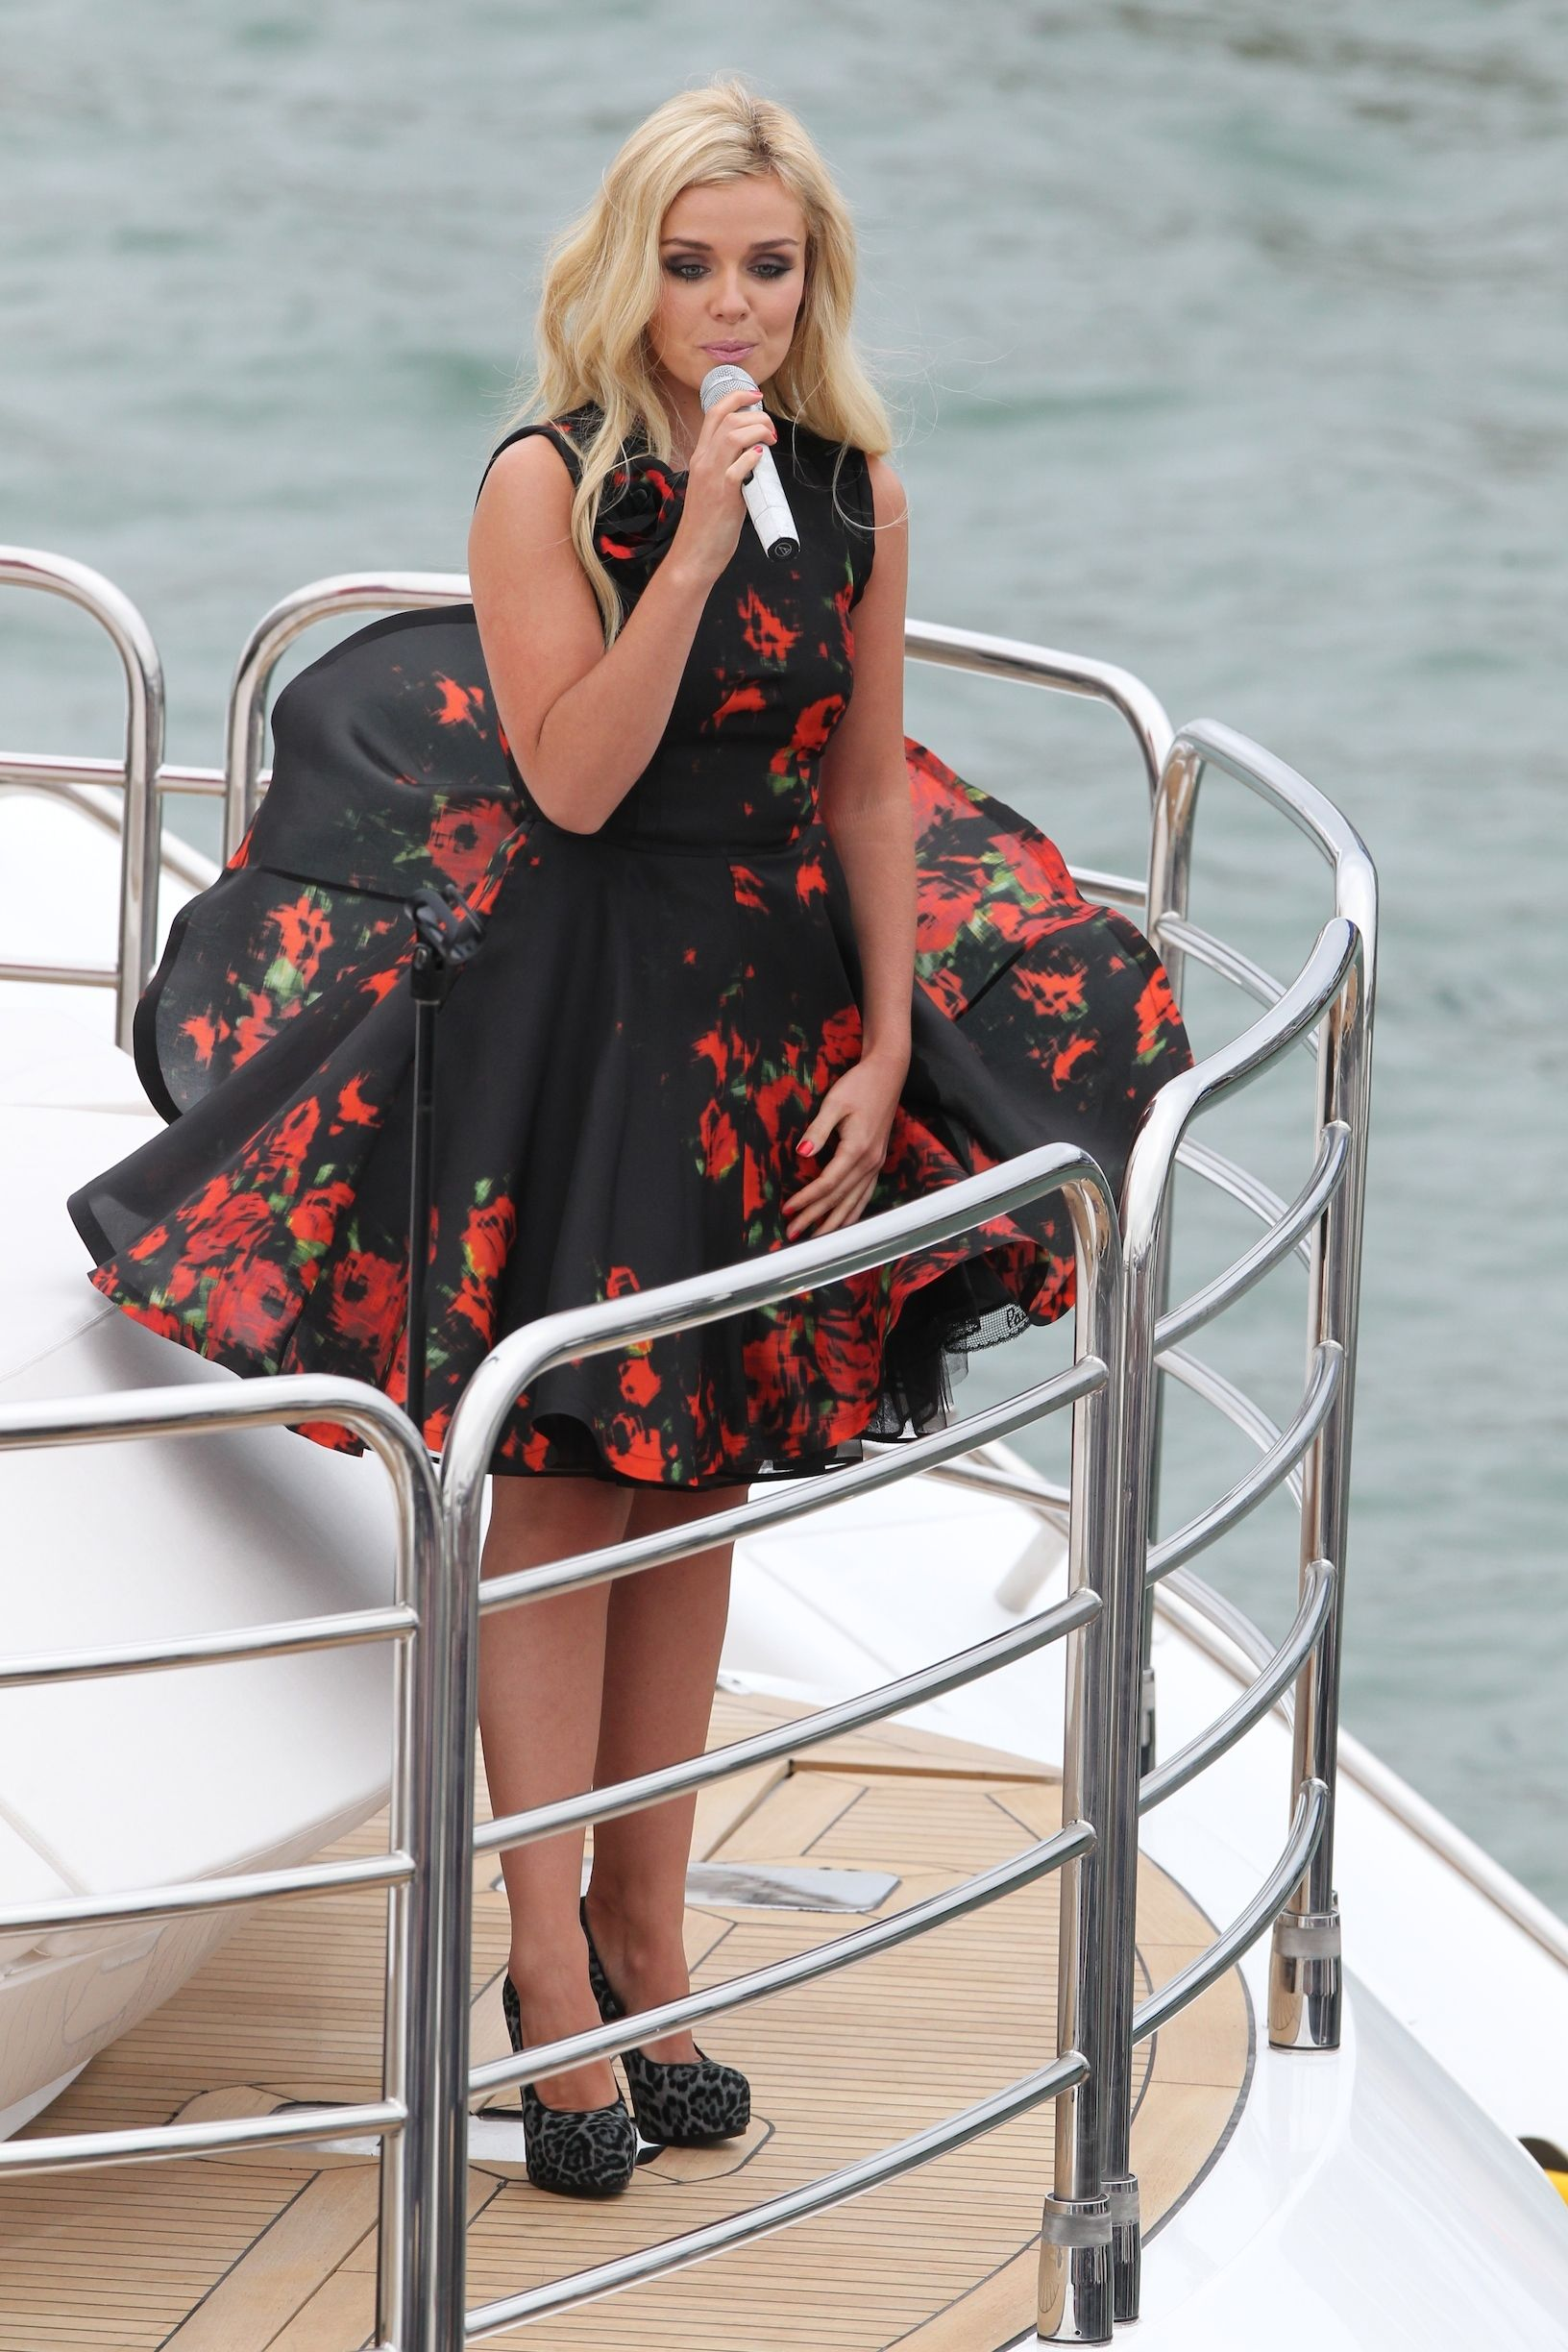 Windy dress. (With images) | Dresses, Dress skirt, Wind skirt